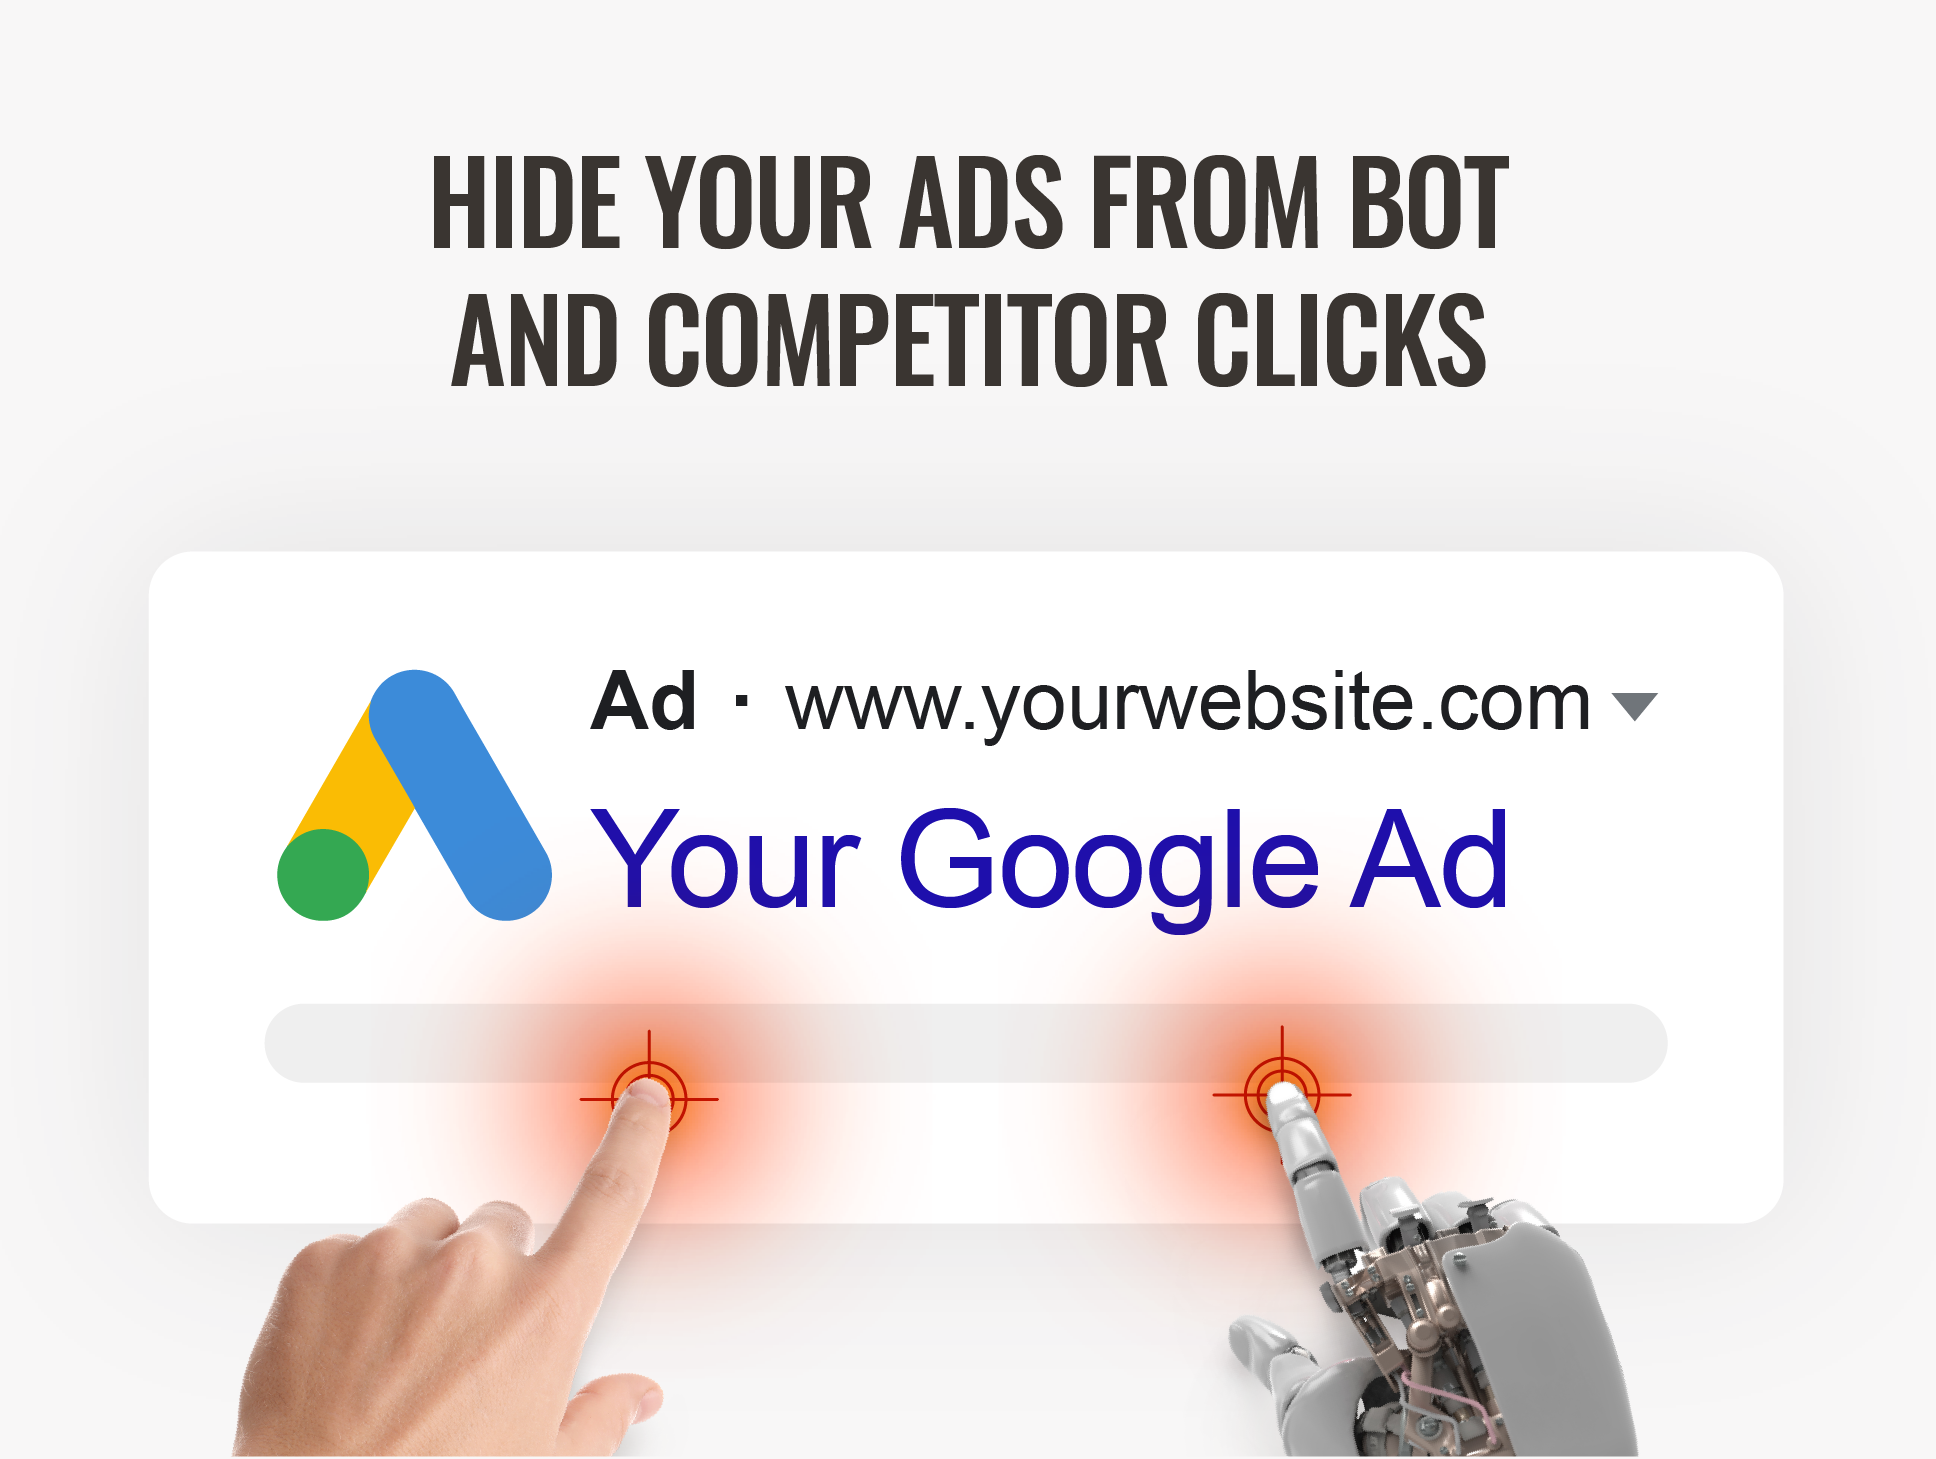 Hide your ads from bot and competitor clicks